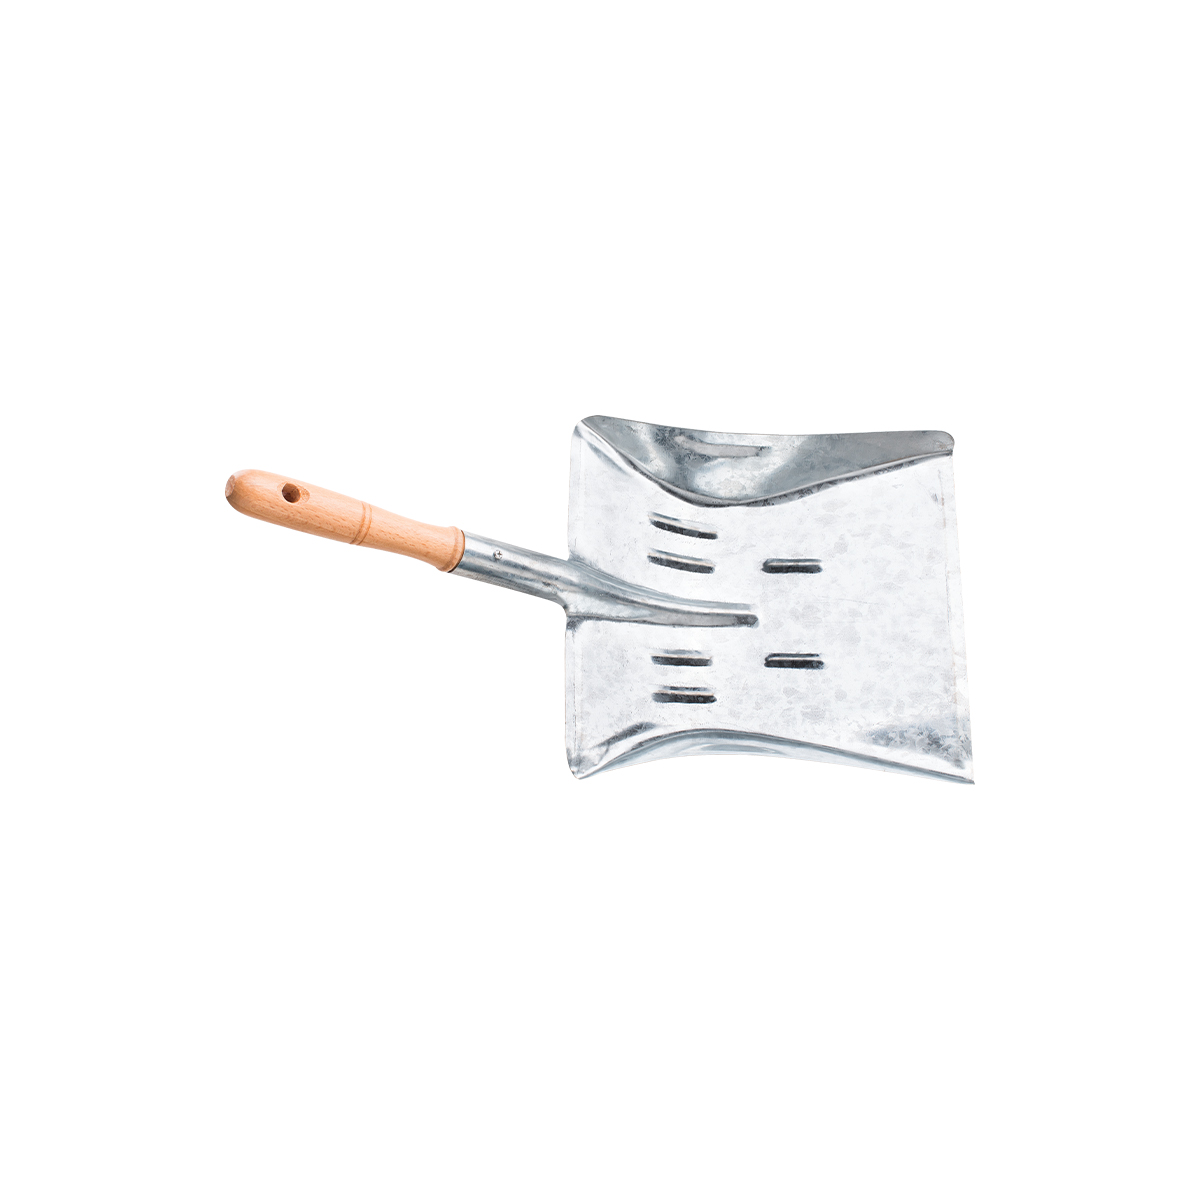 METAL DUSTPAN WITH WOODEN HANDLE